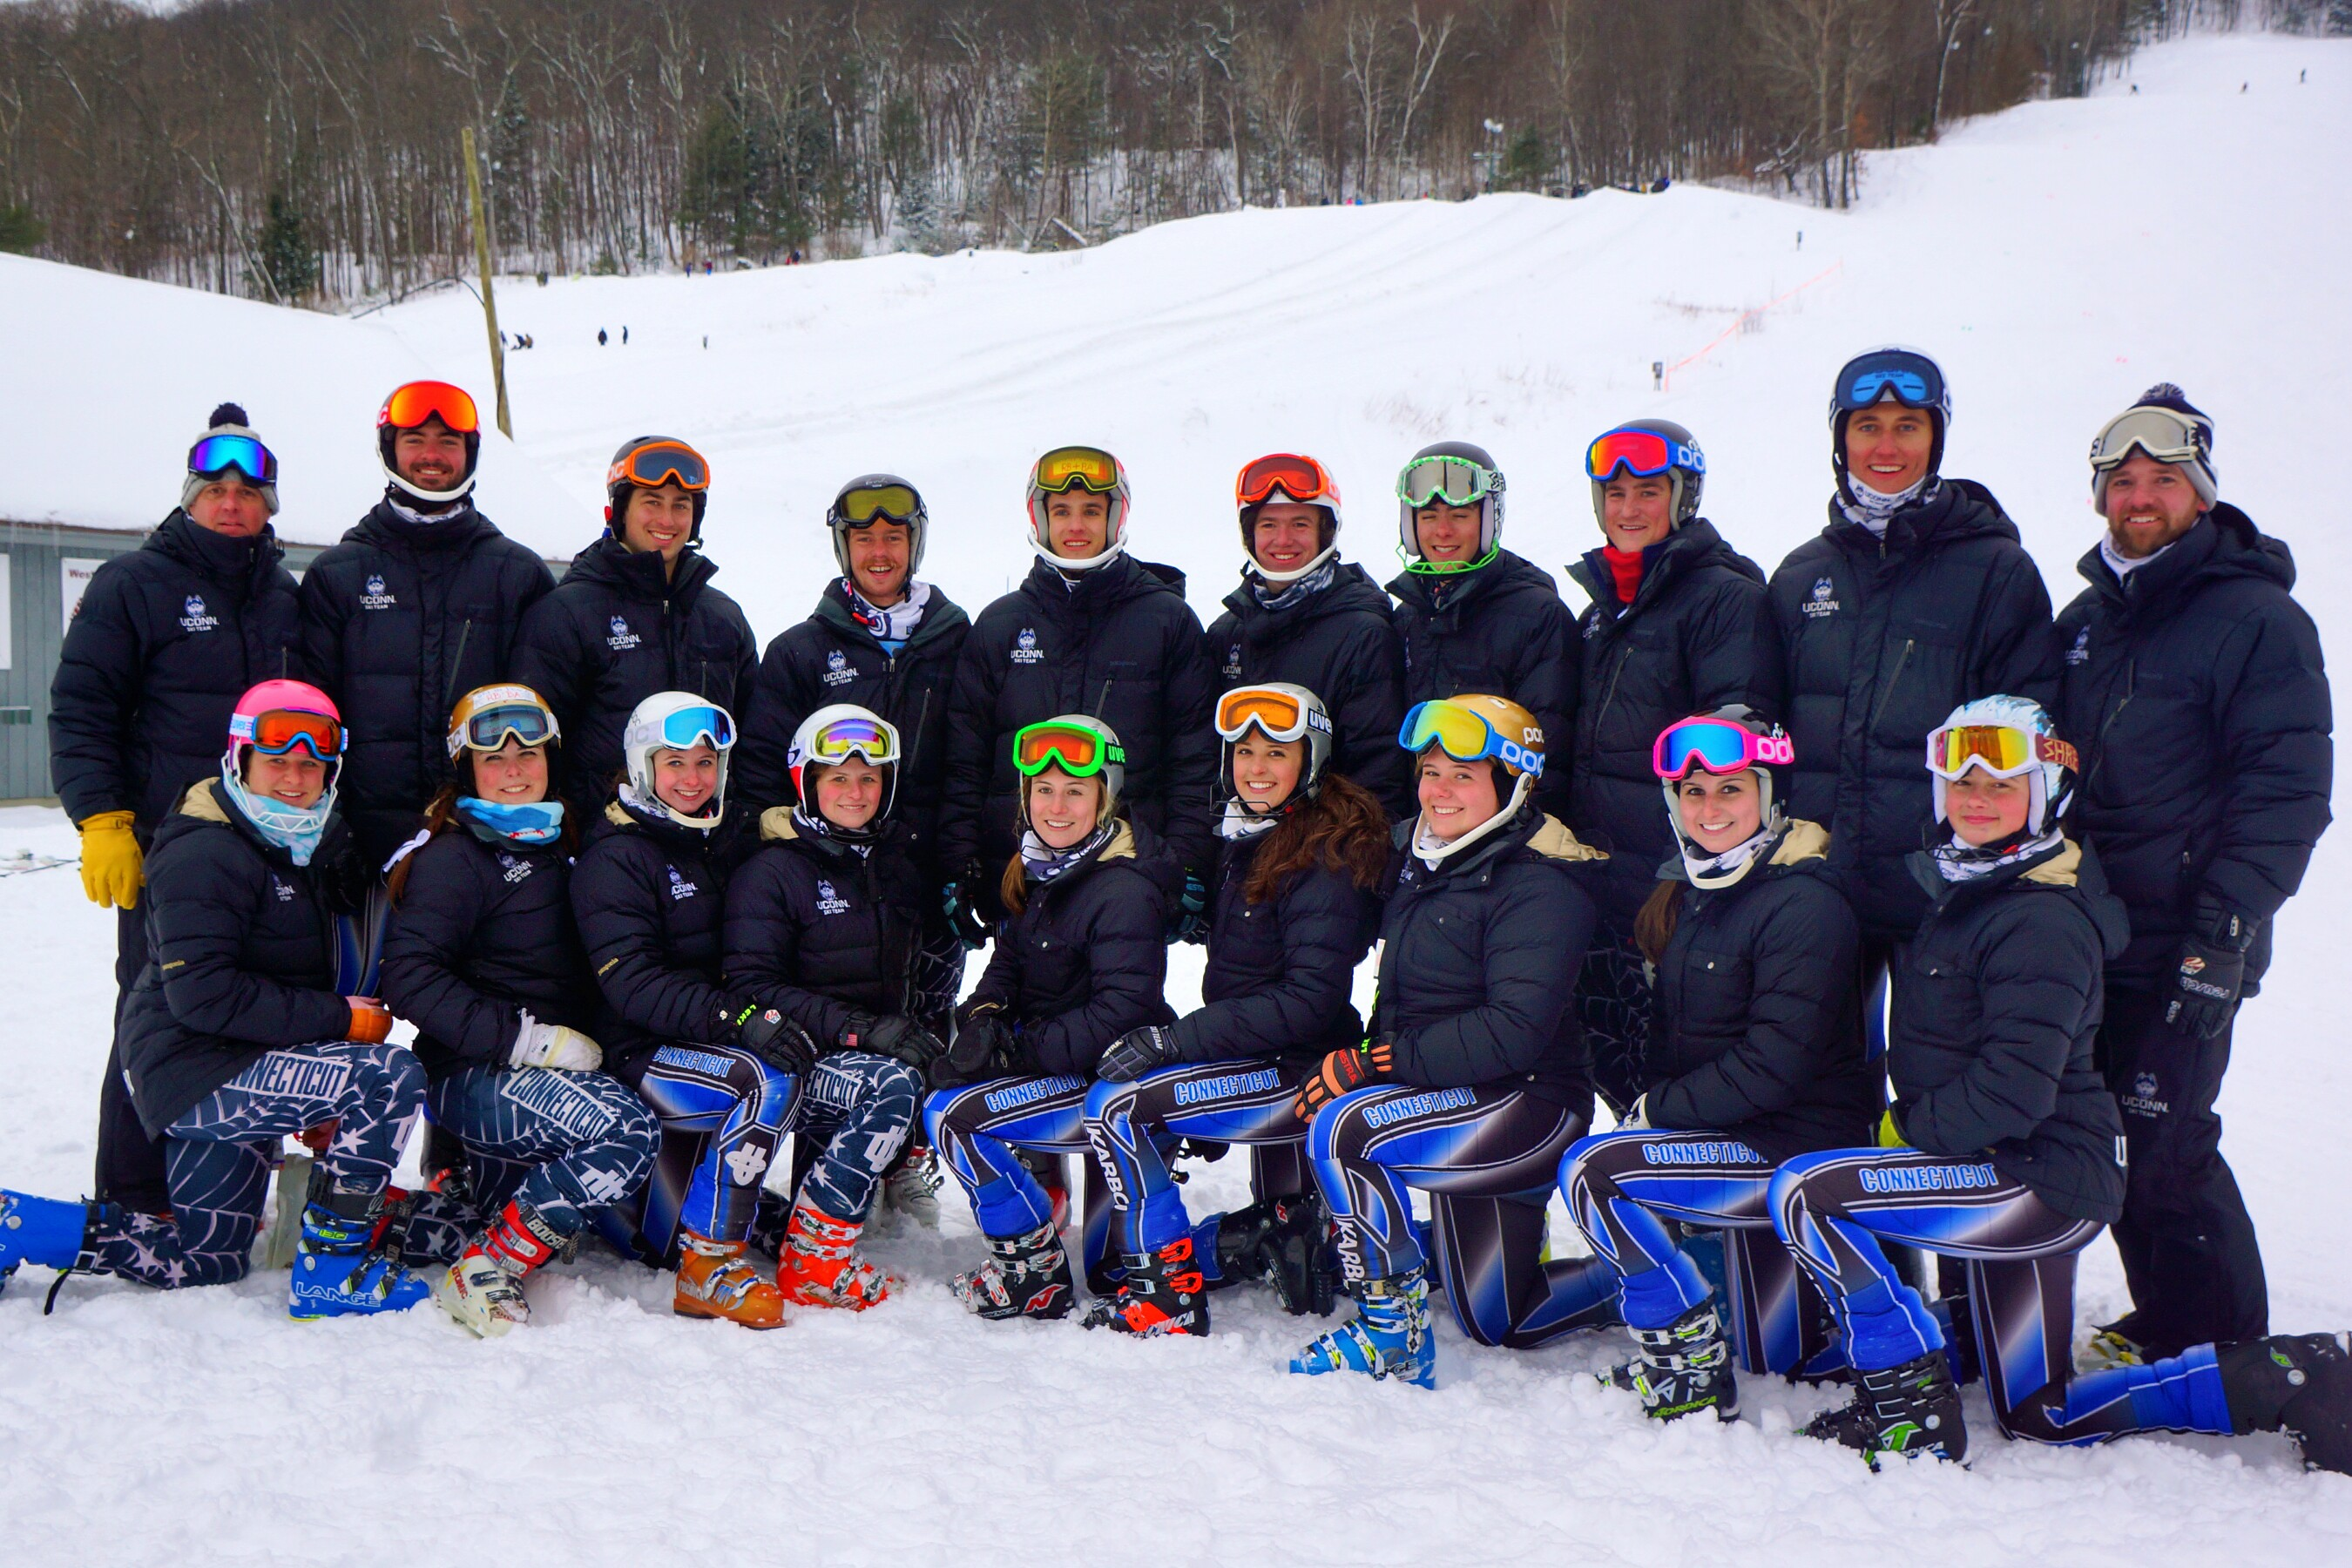 The 2014-2015 UConn Ski Team